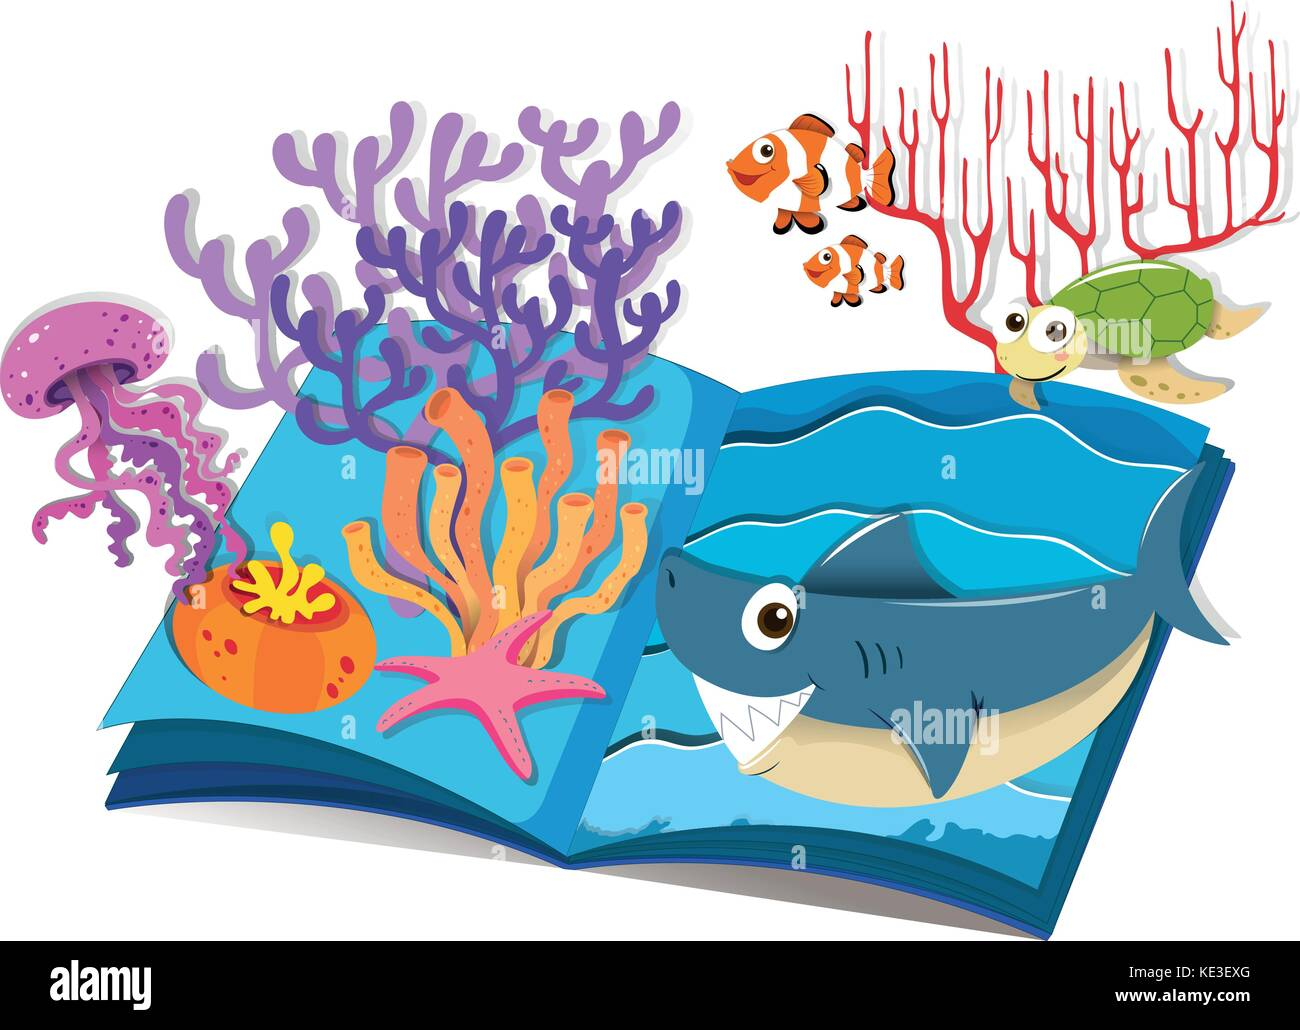 Book of underwater and sea animals illustration - Stock Image